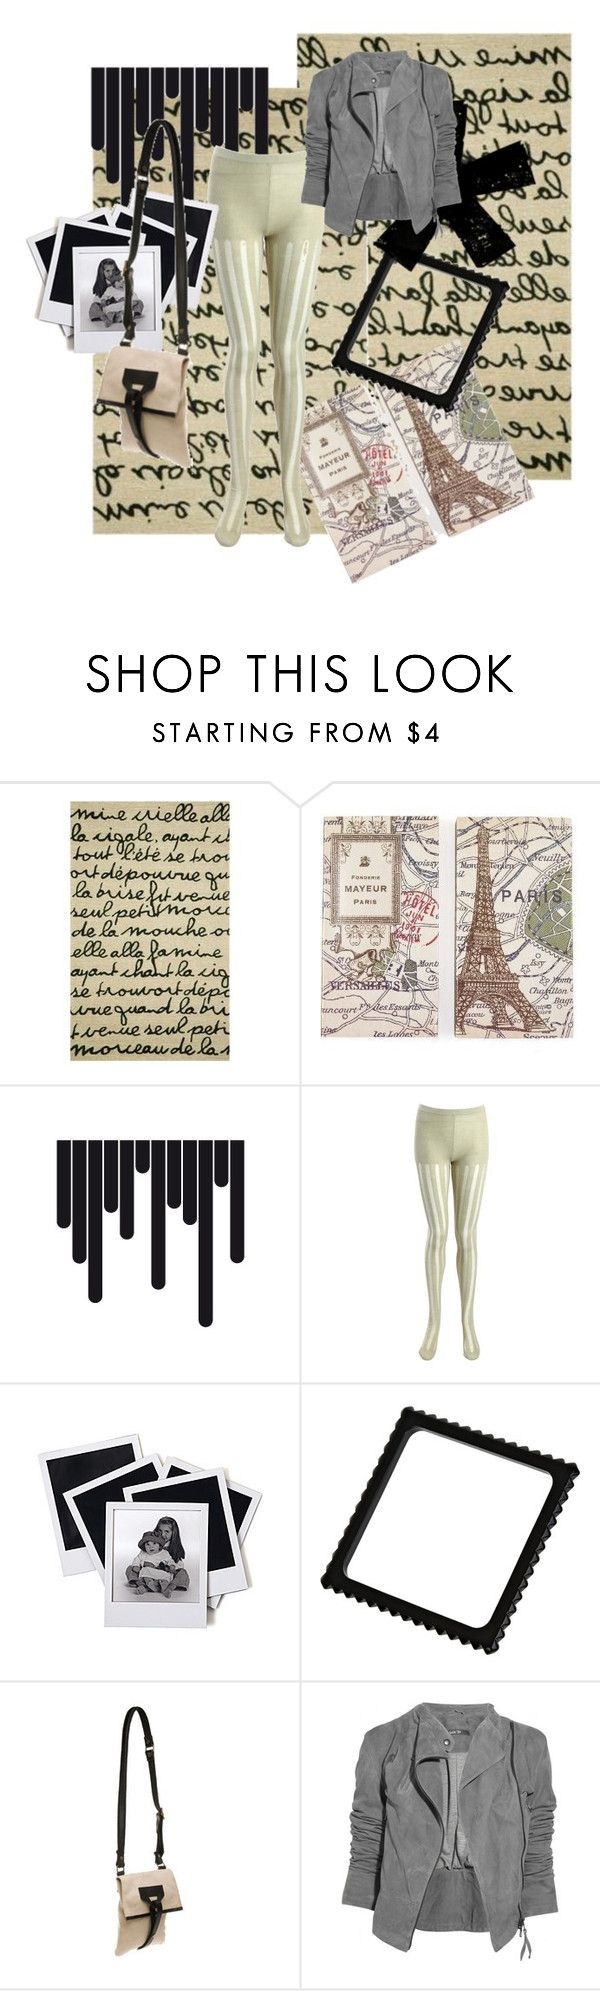 """""""Chill"""" by corinelle11 ❤ liked on Polyvore featuring Burberry, Jas M.B., Lot78 and colorfuldresses"""